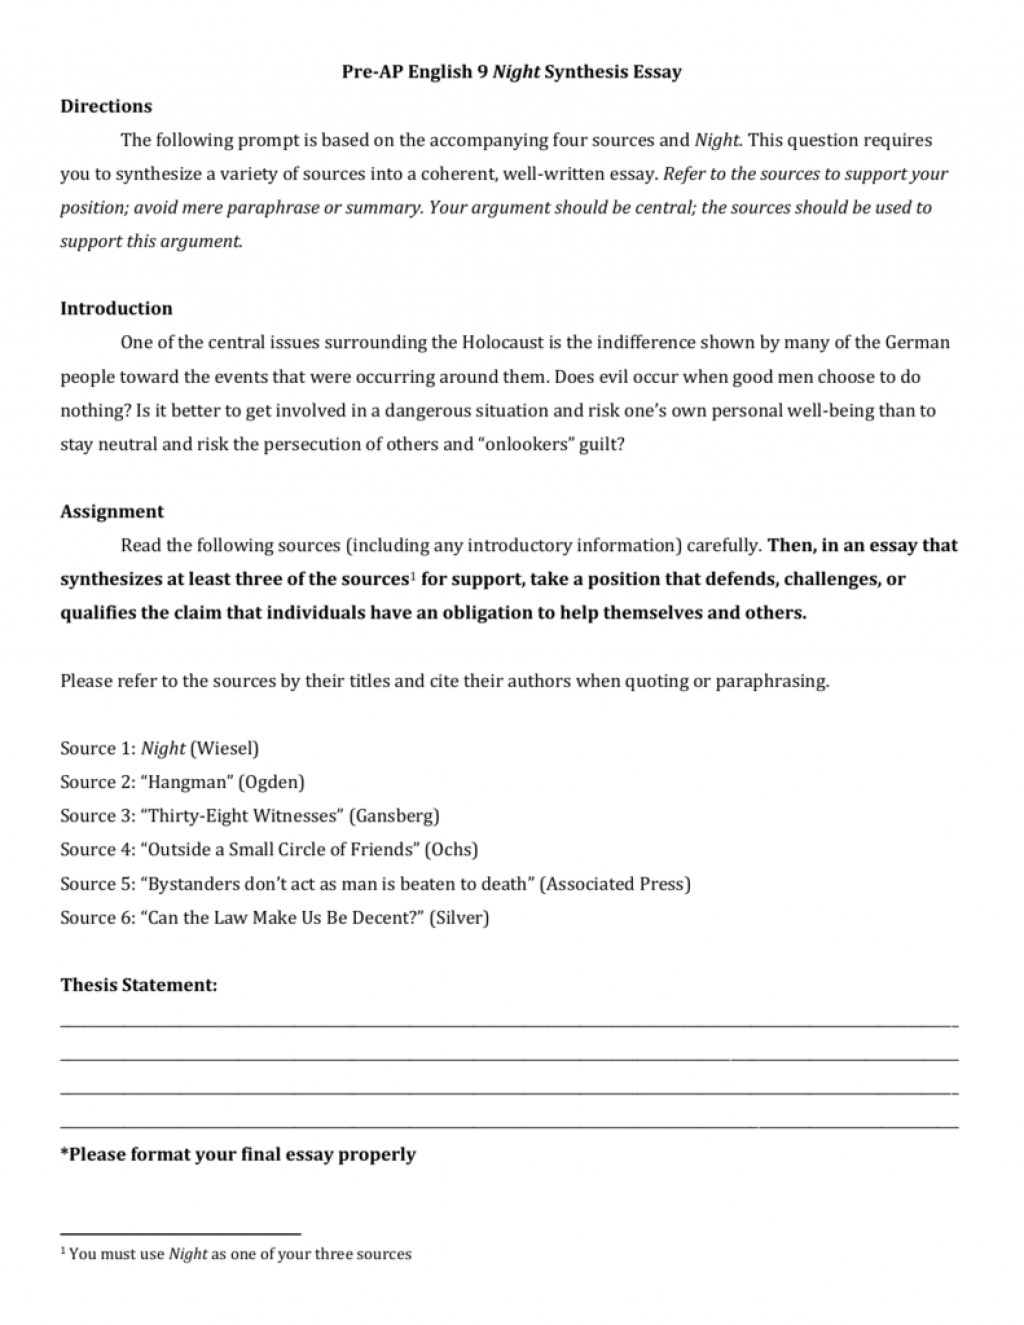 005 Essay Example 006963363 1 Synthesis Fearsome Prompt 2017 Ap Lang Locavore Examples Large